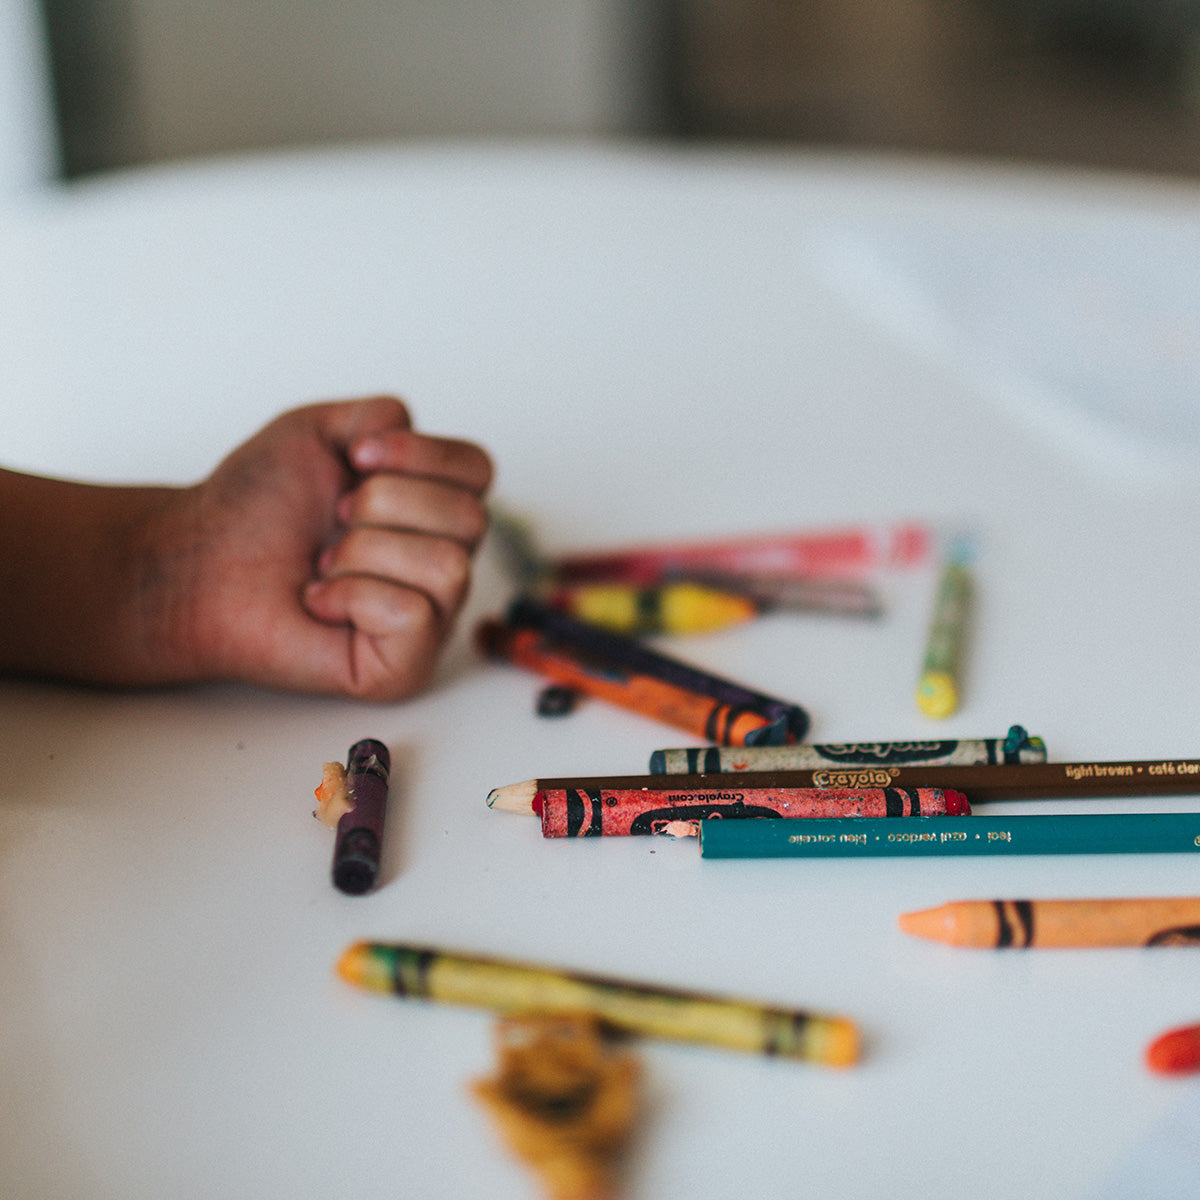 Used crayons for children